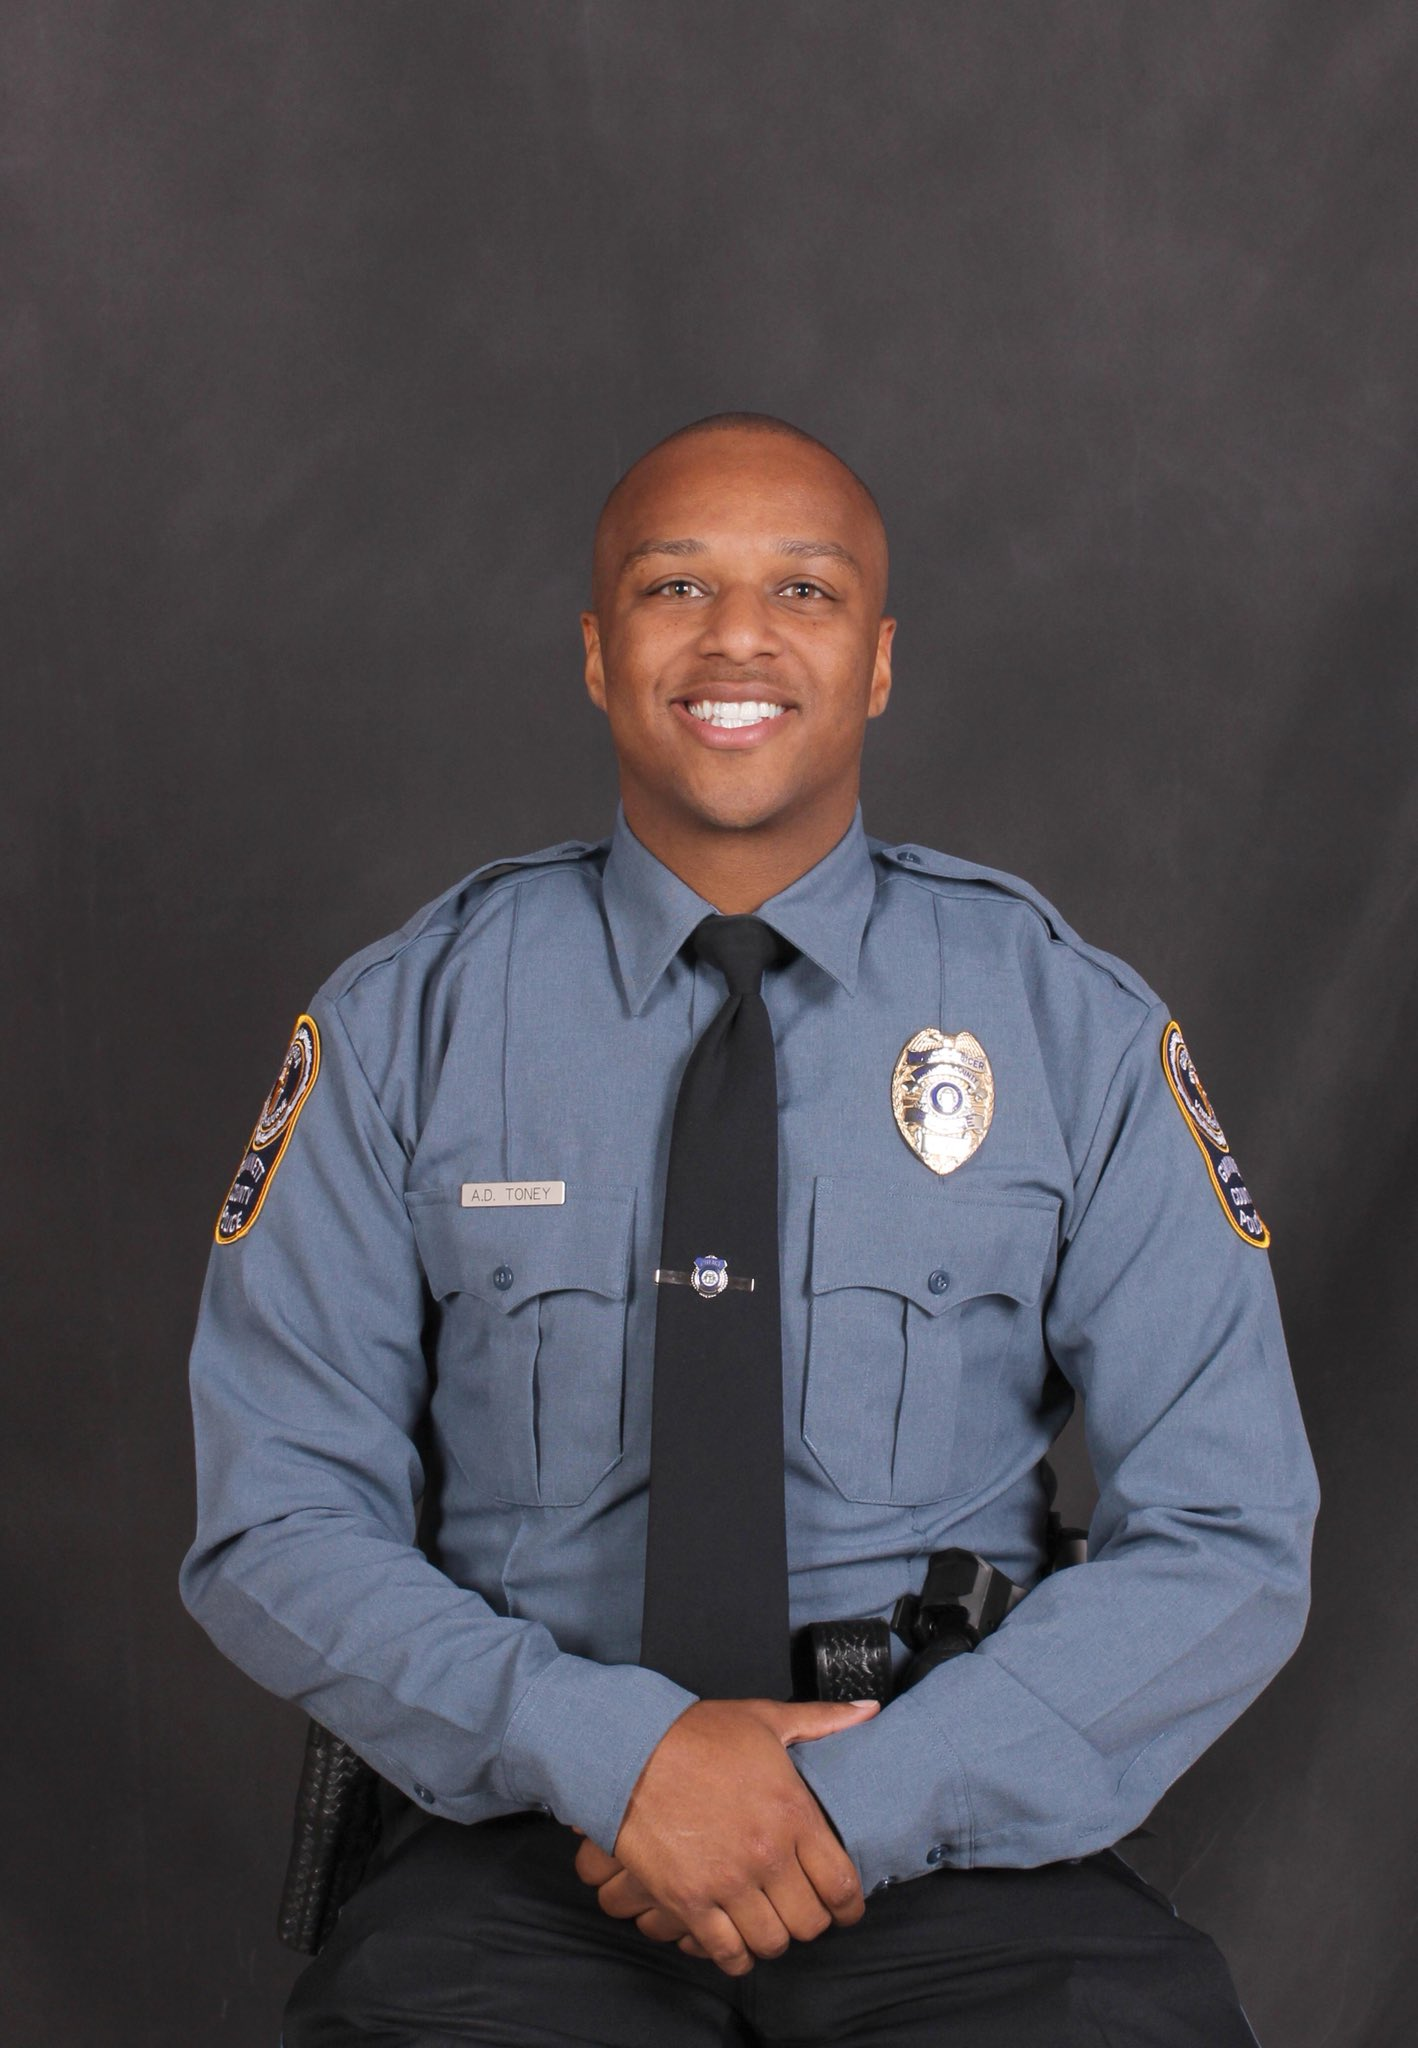 Police Officer Antwan DeArvis Toney | Gwinnett County Police Department, Georgia